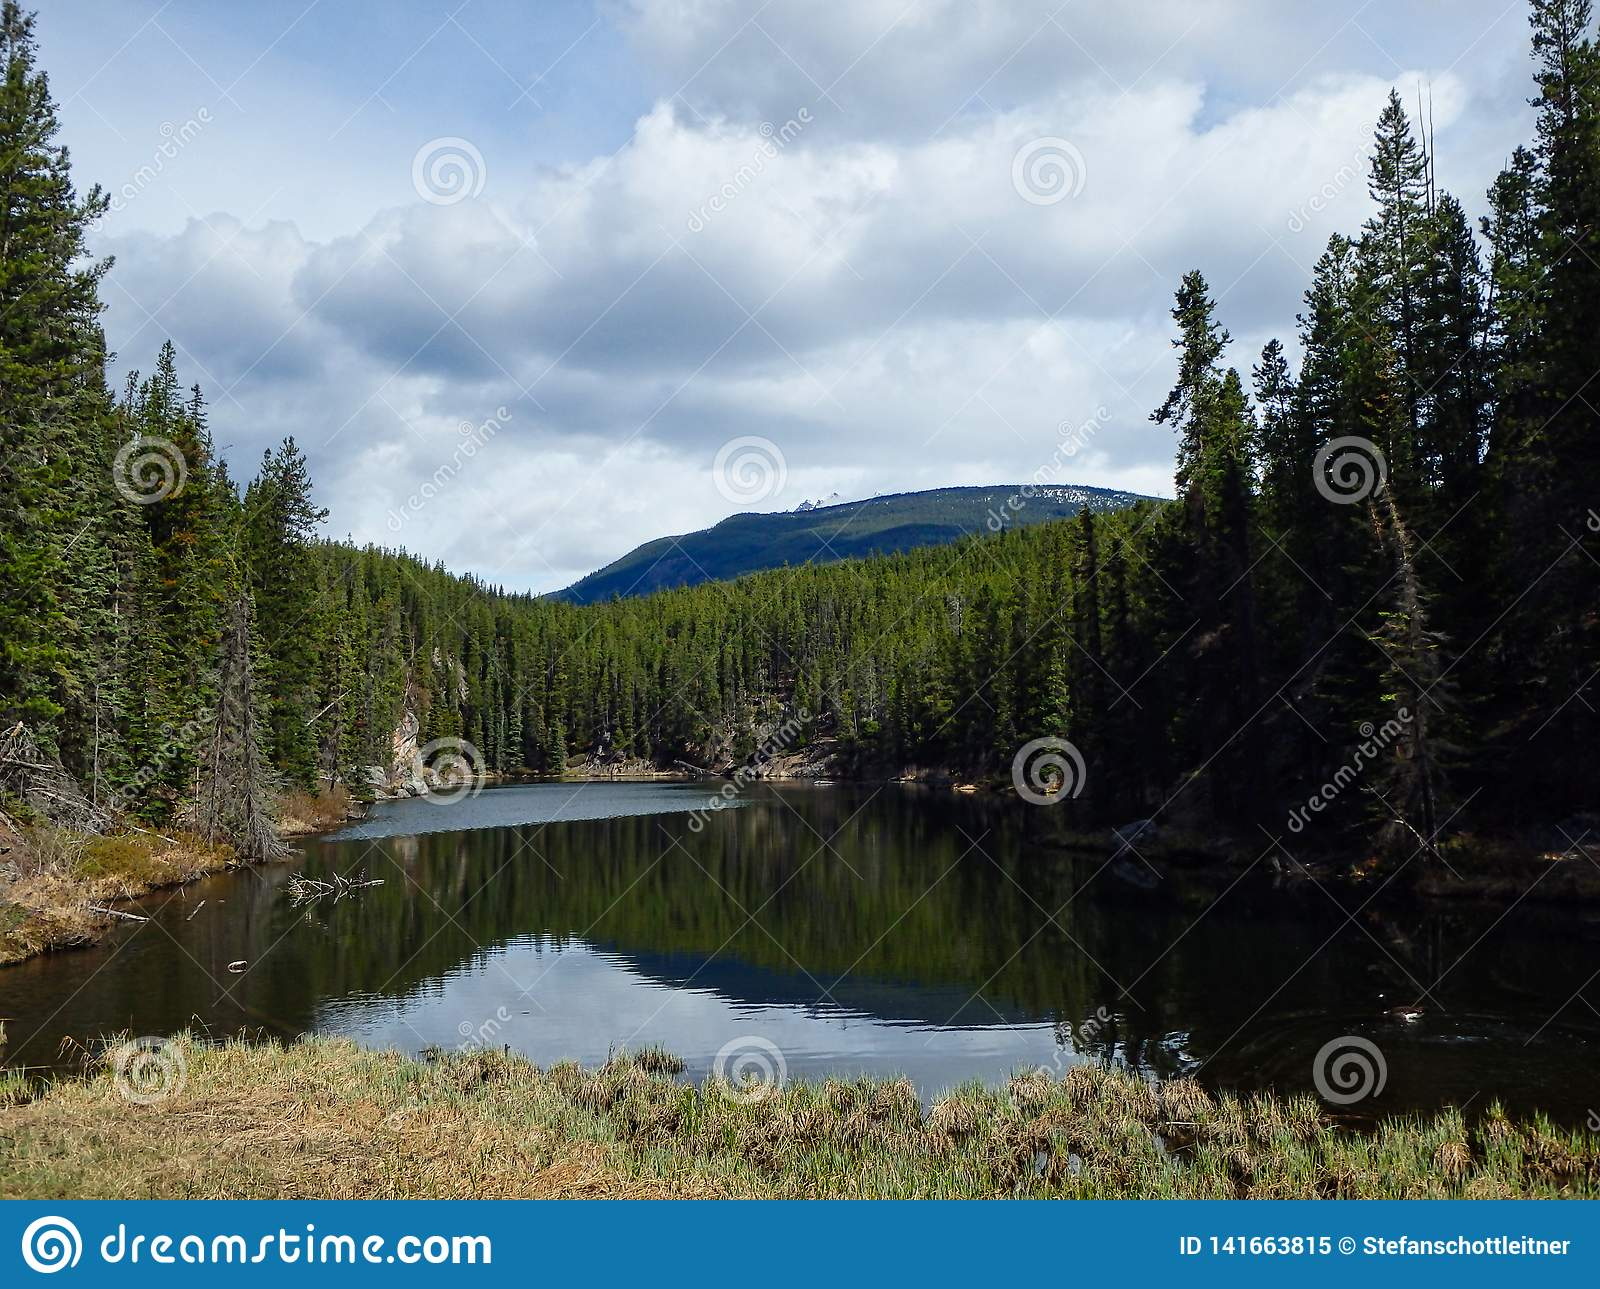 A Clear Lake In The Woods In Summer Stock Image - Image of